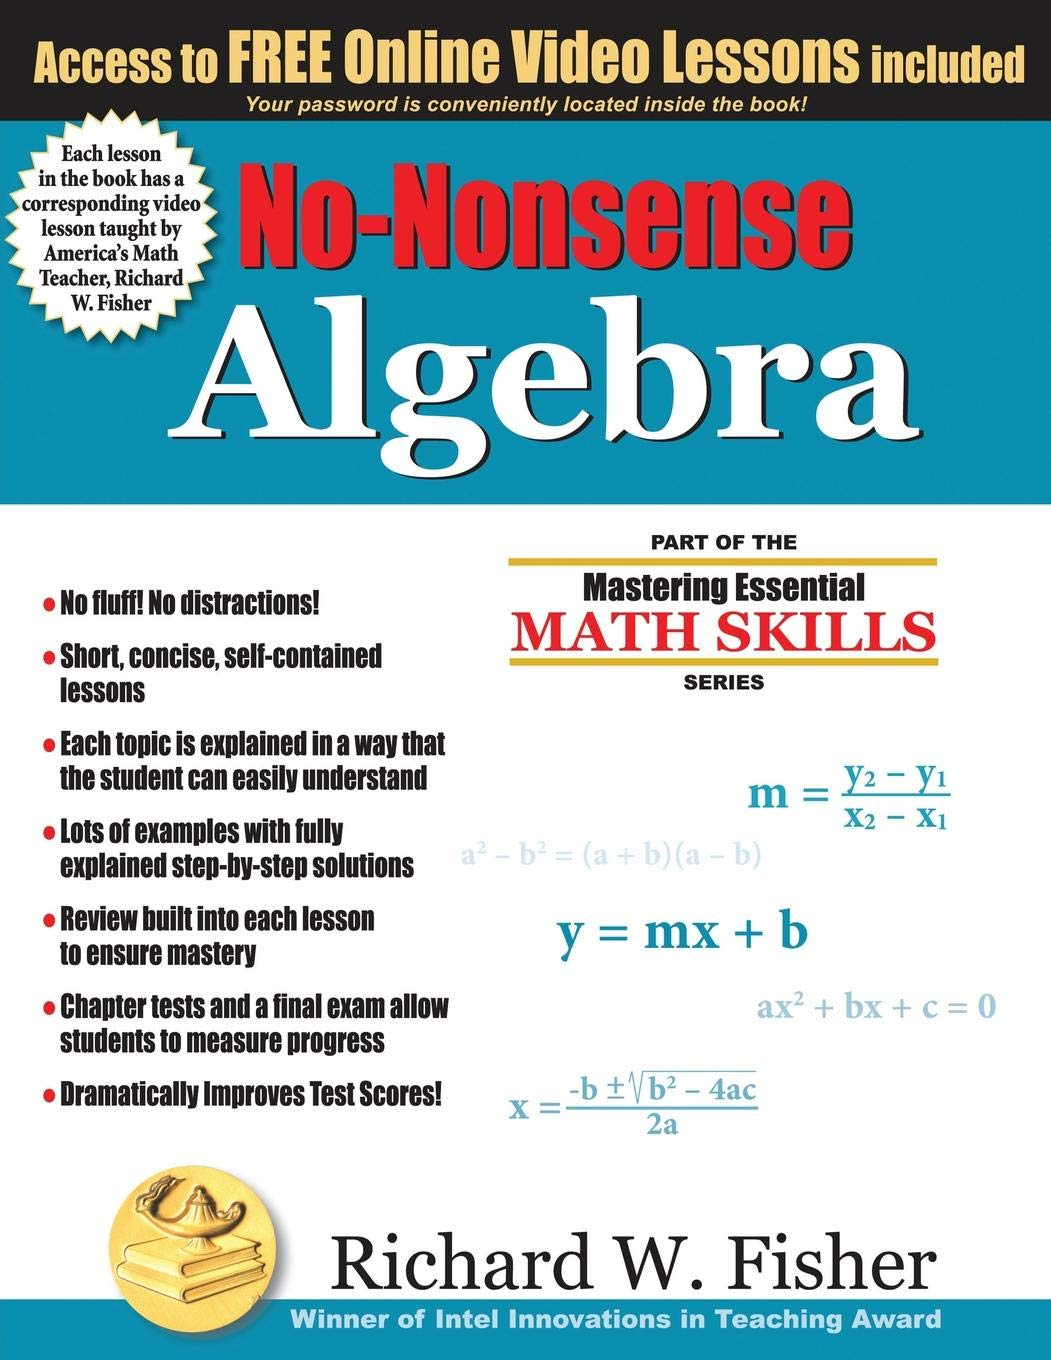 No-Nonsense Algebra: Part of the Mastering Essential Math Skills Series:  Richard W. Fisher: 9780984362998: Amazon.com: Books